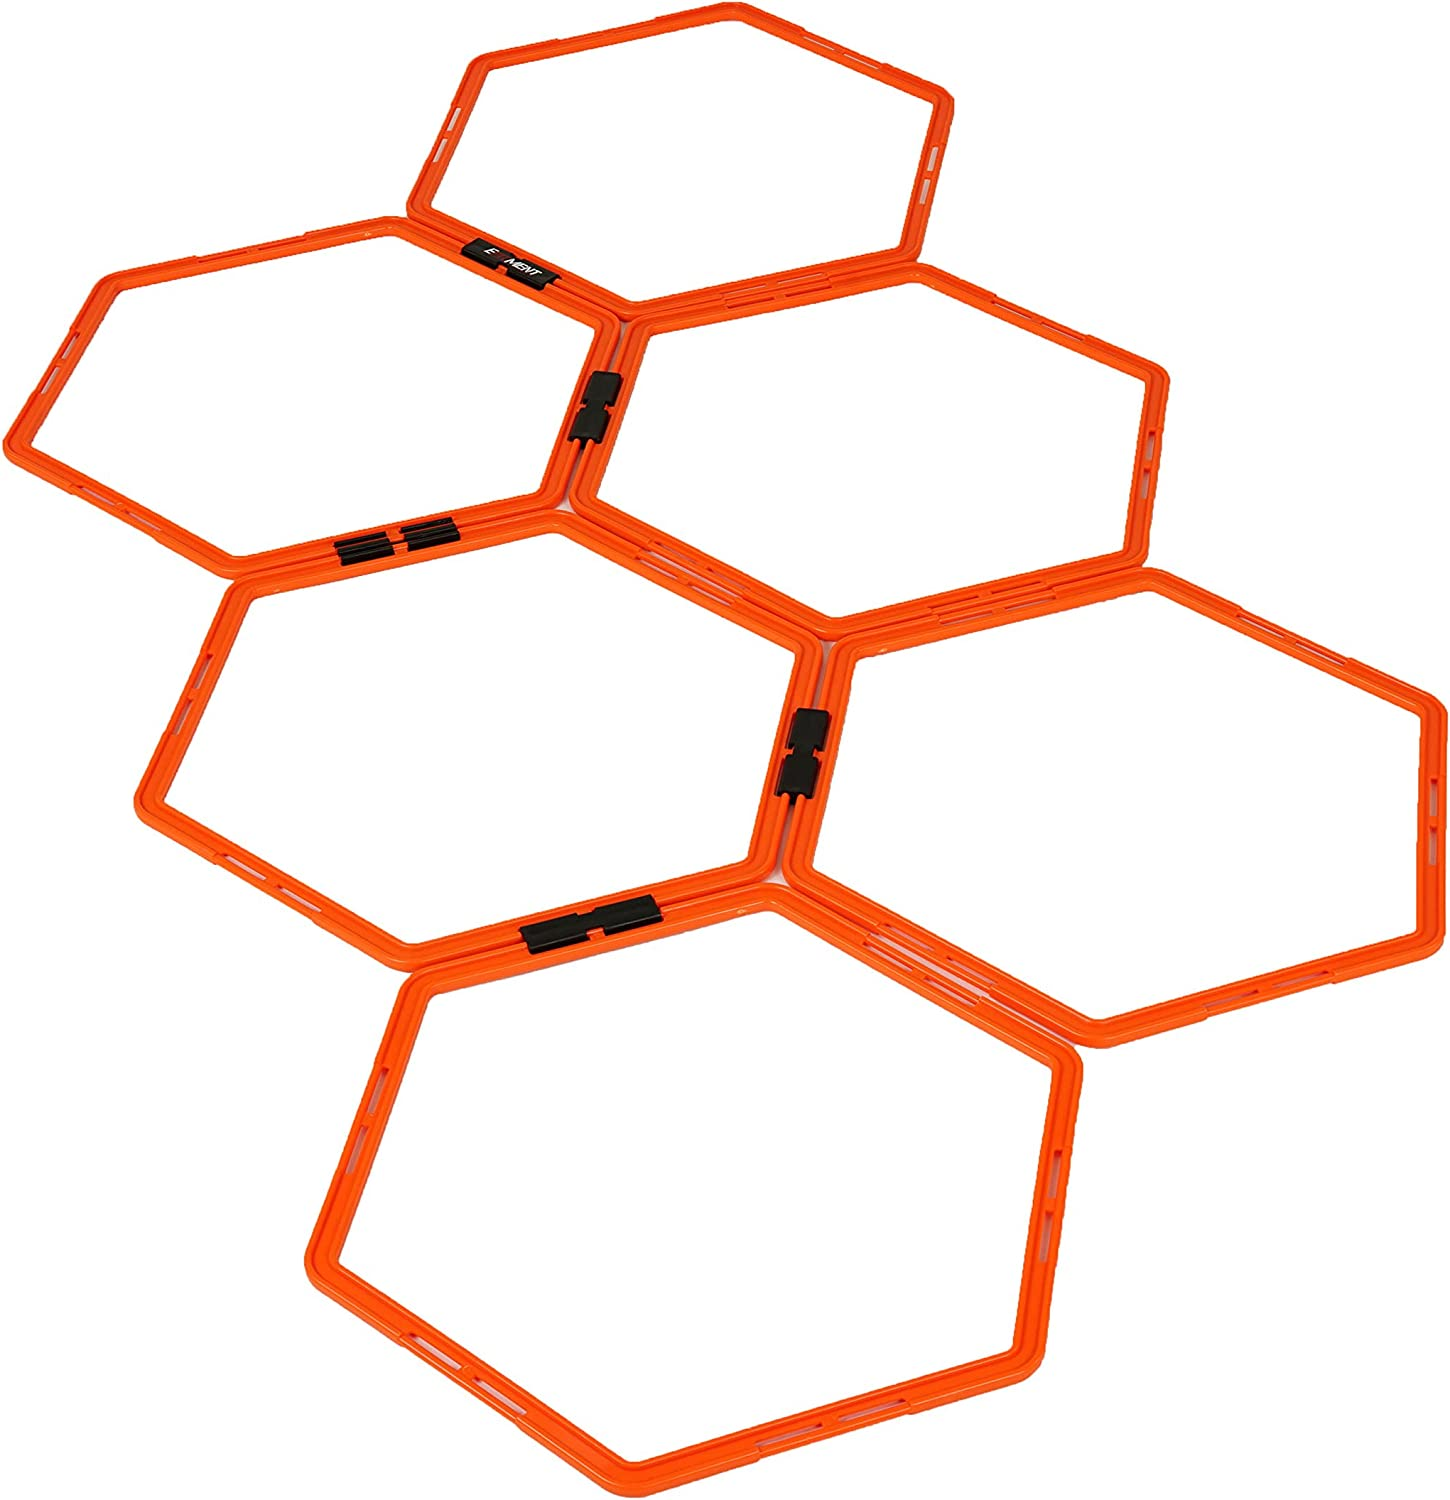 EFITMENT Hexagonal Hex Speed Rings, Agility Rings, Training Rings, Workout Rings for Fitness Foot Work – A009